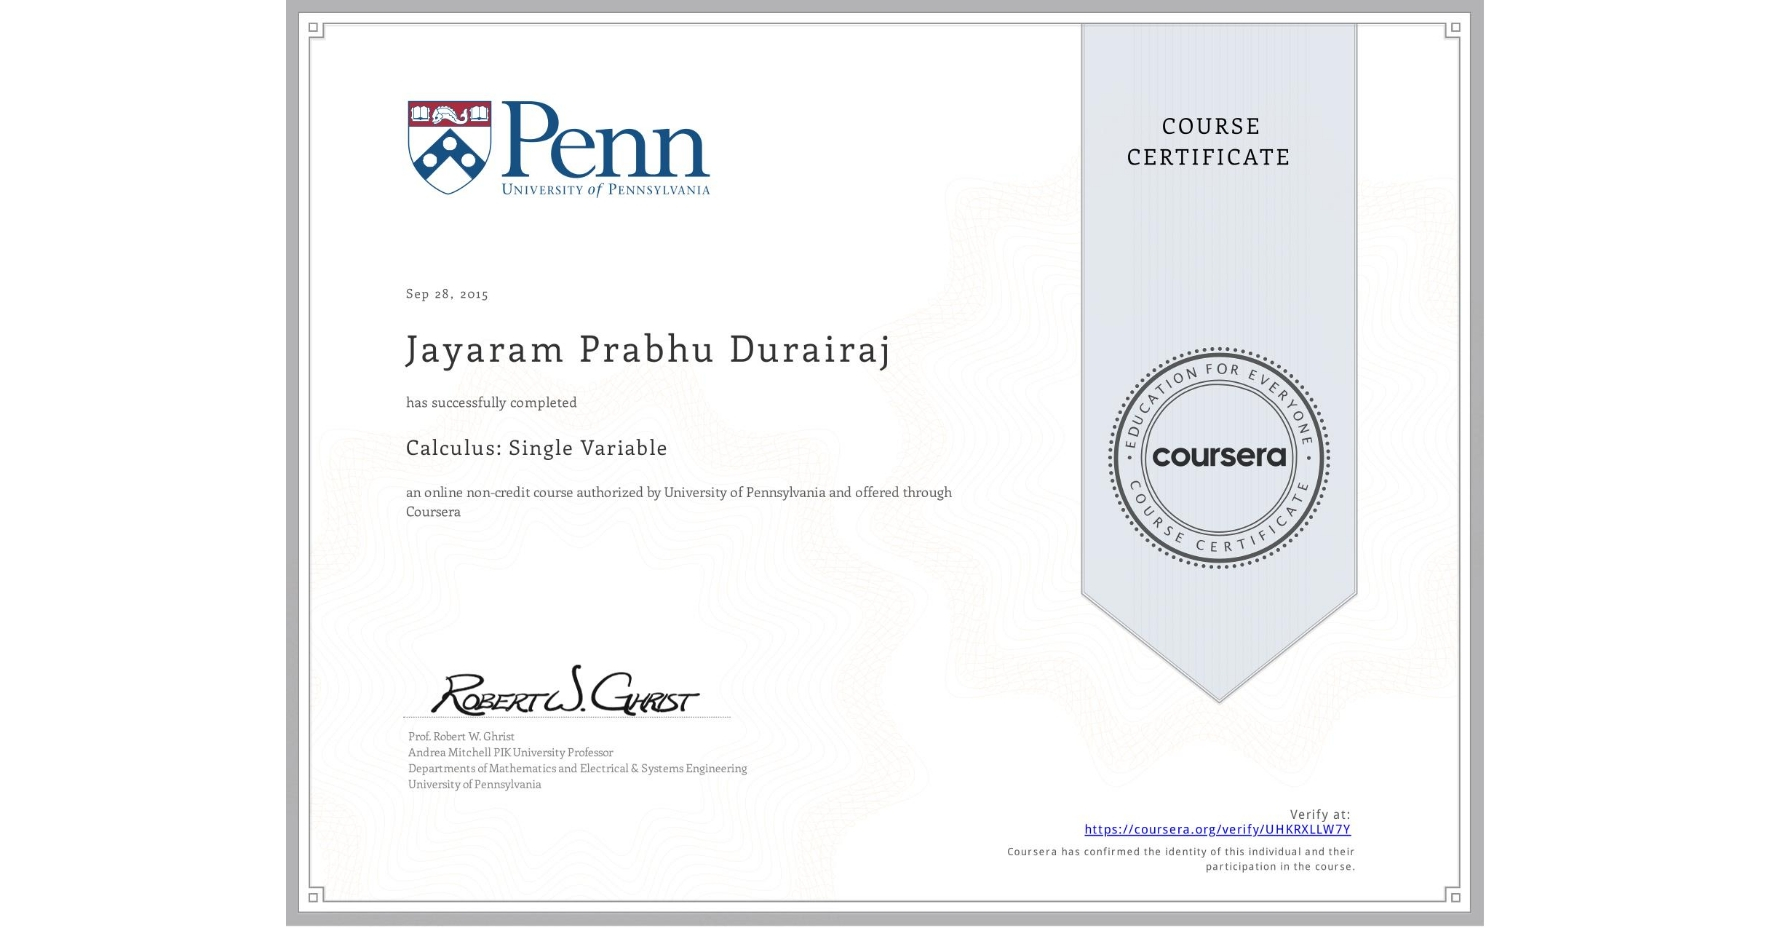 View certificate for Jayaram Prabhu  Durairaj, Calculus: Single Variable, an online non-credit course authorized by University of Pennsylvania and offered through Coursera